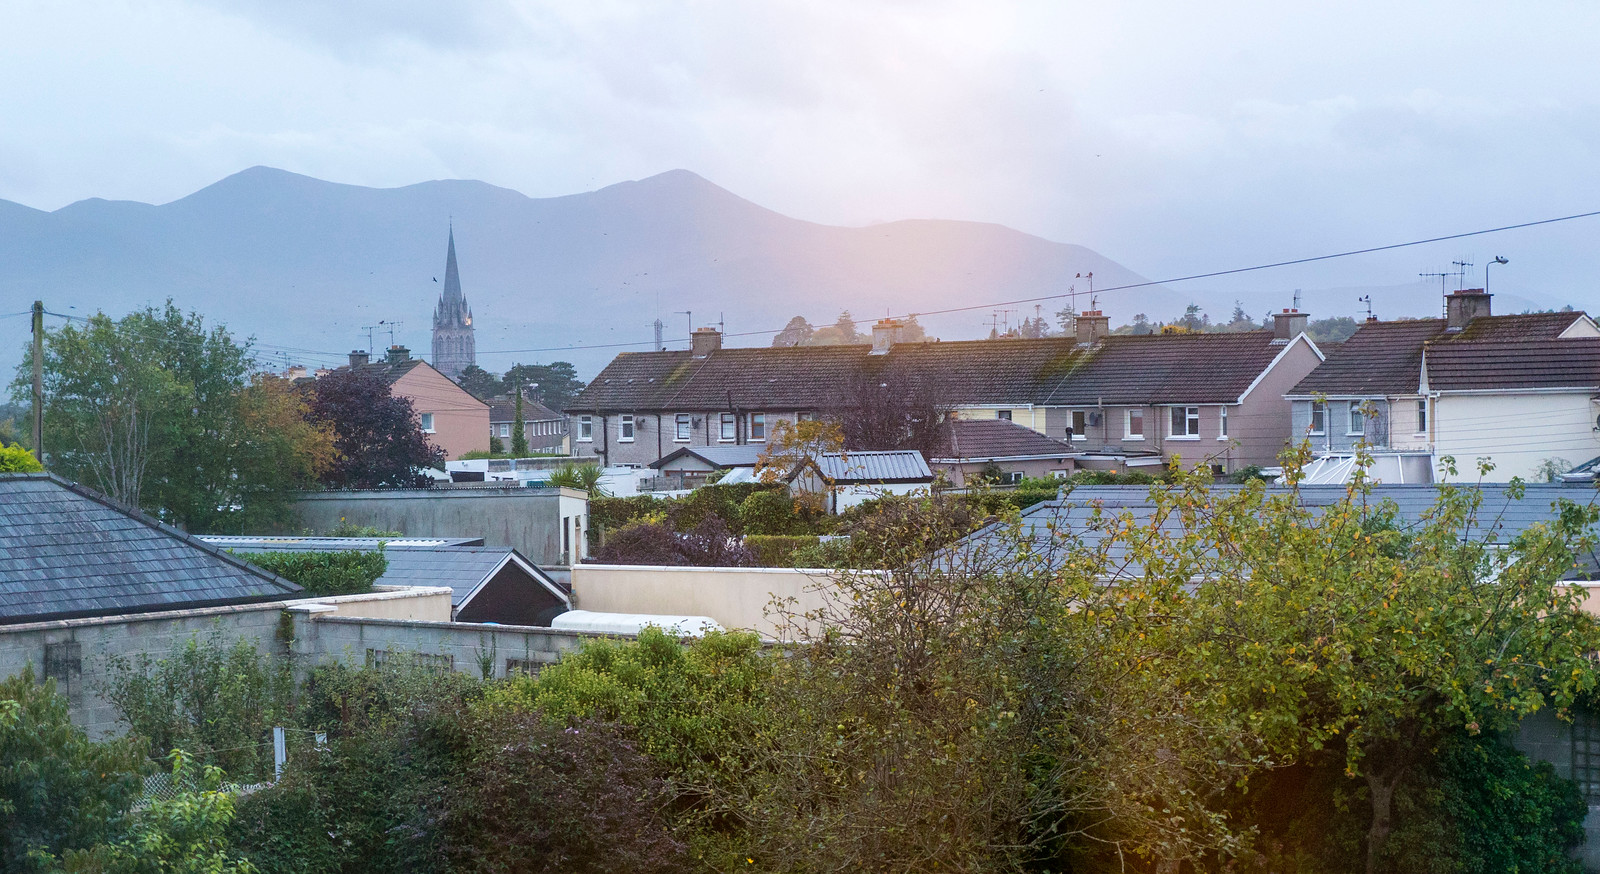 Luxury Holiday Homes Killarney: Luxquisite's Belmont